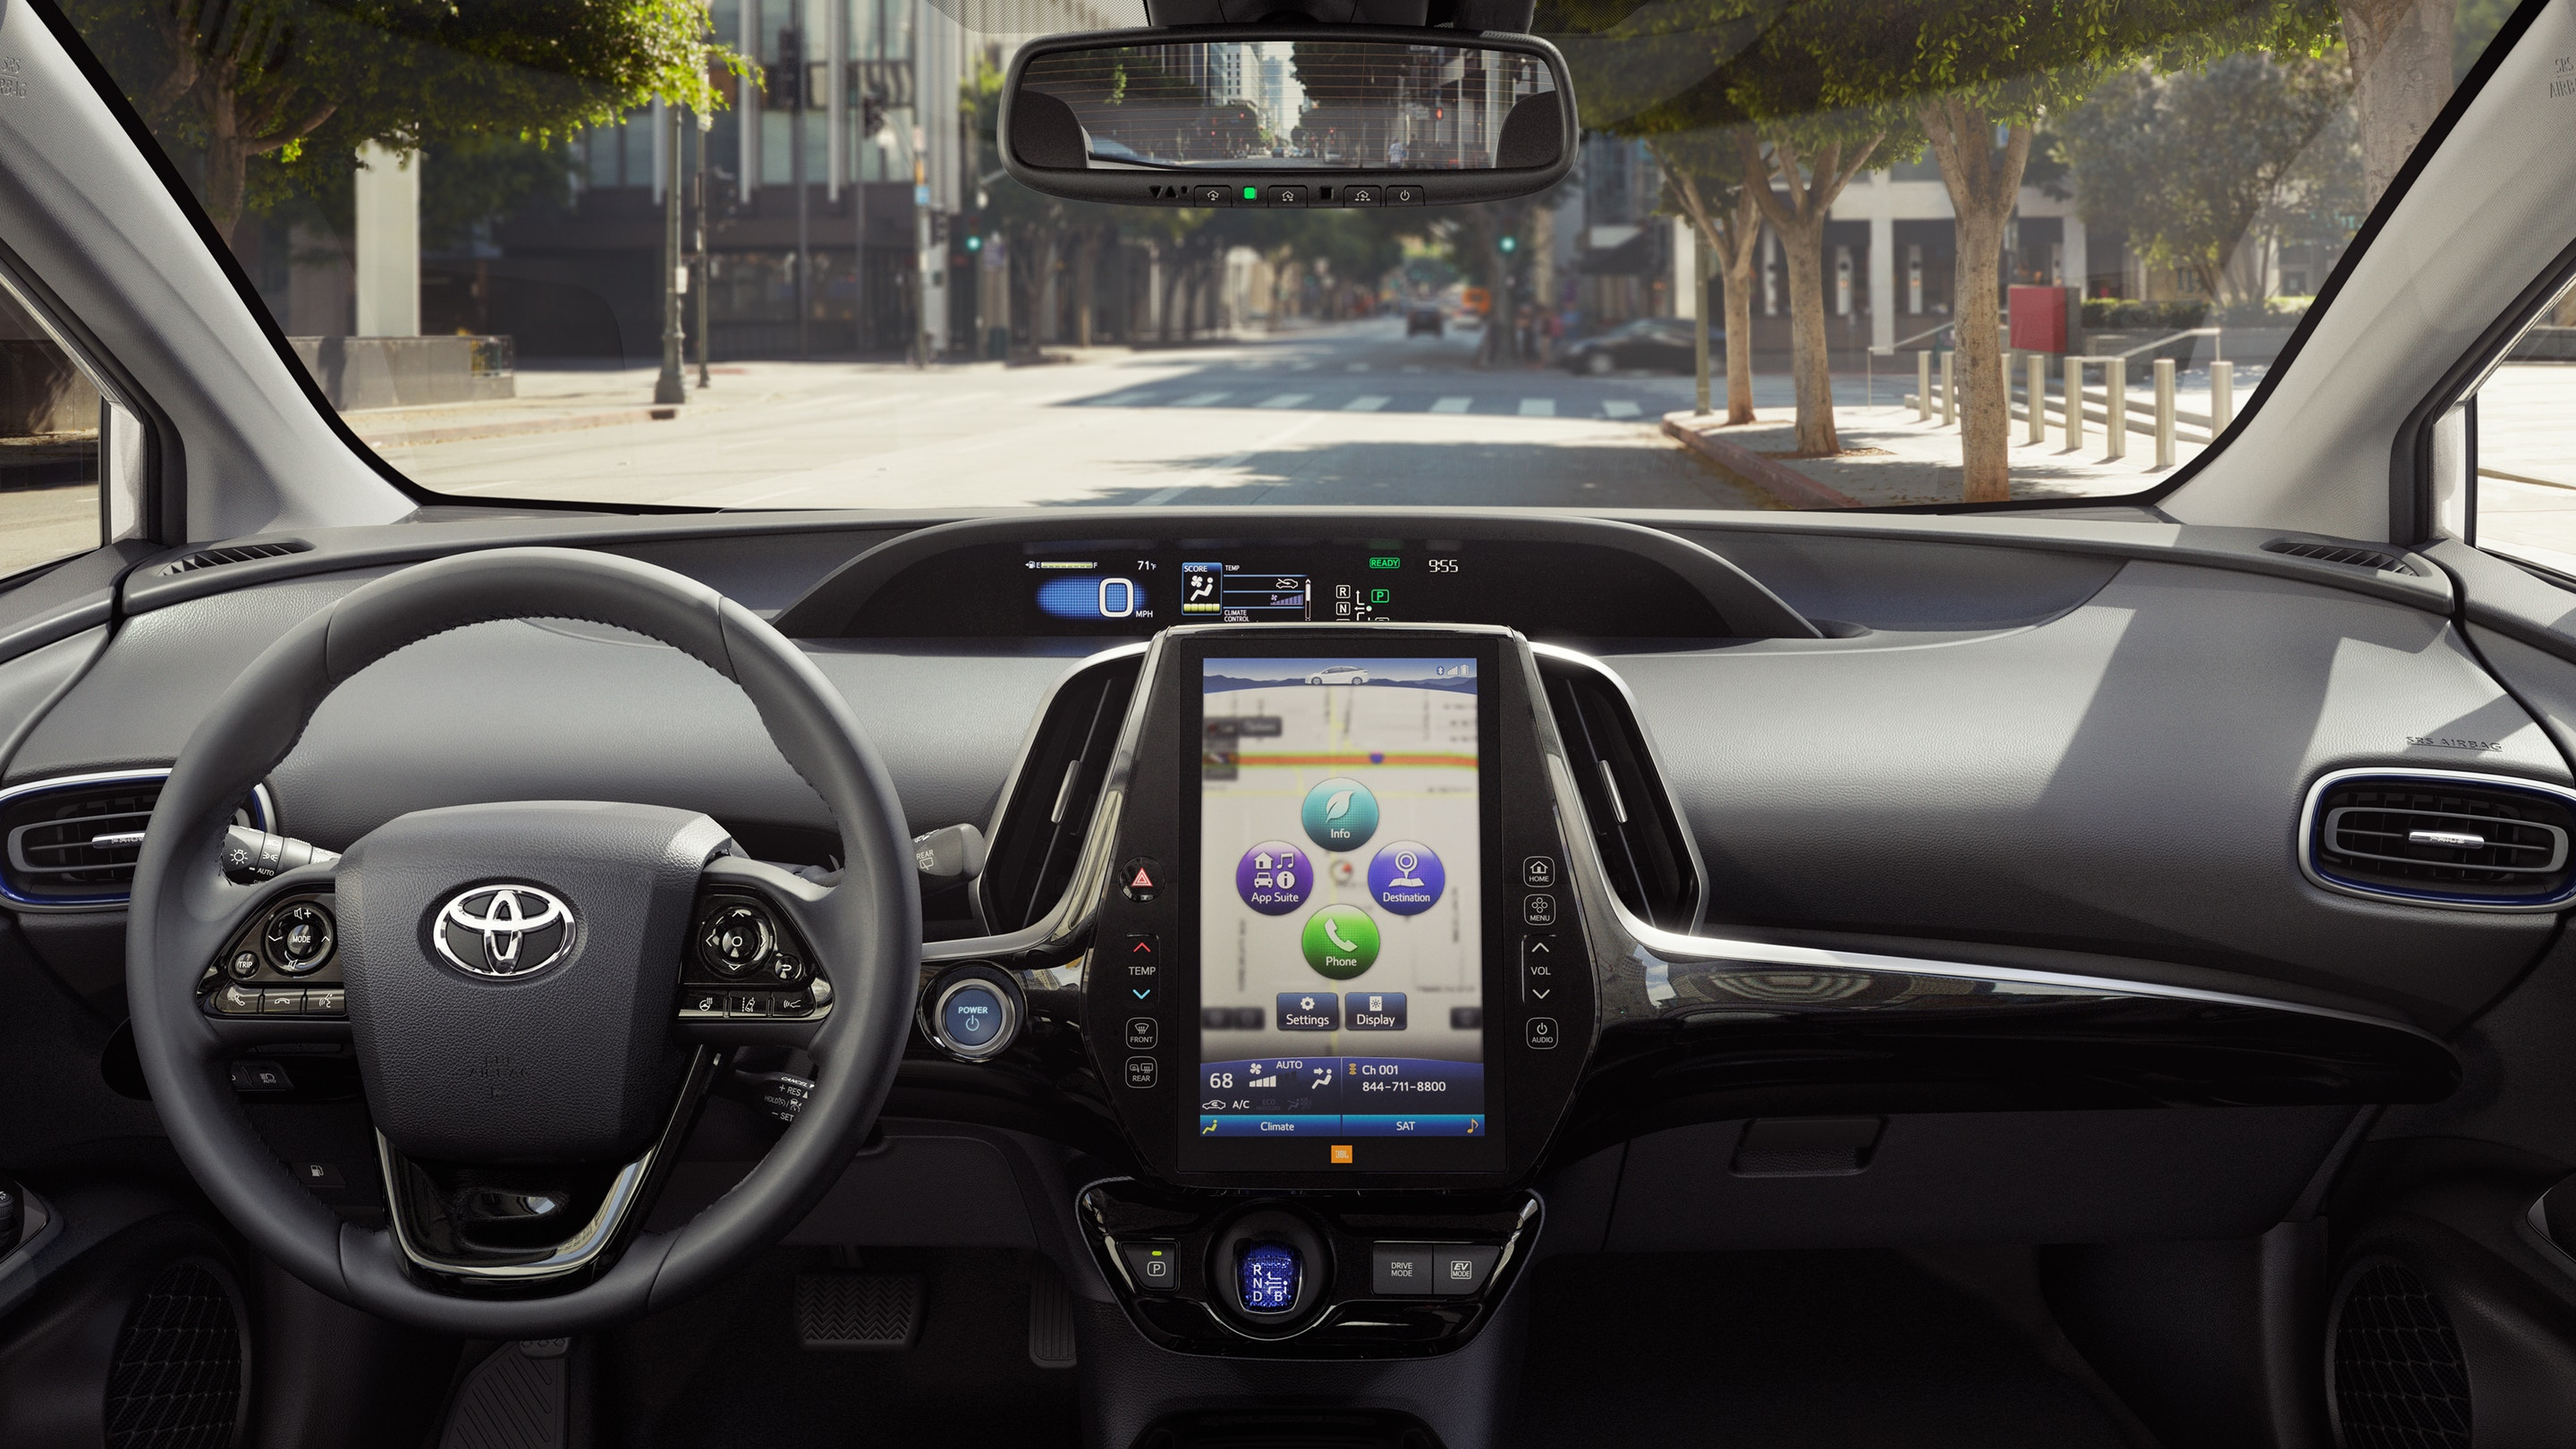 Tech Options in the 2019 Prius